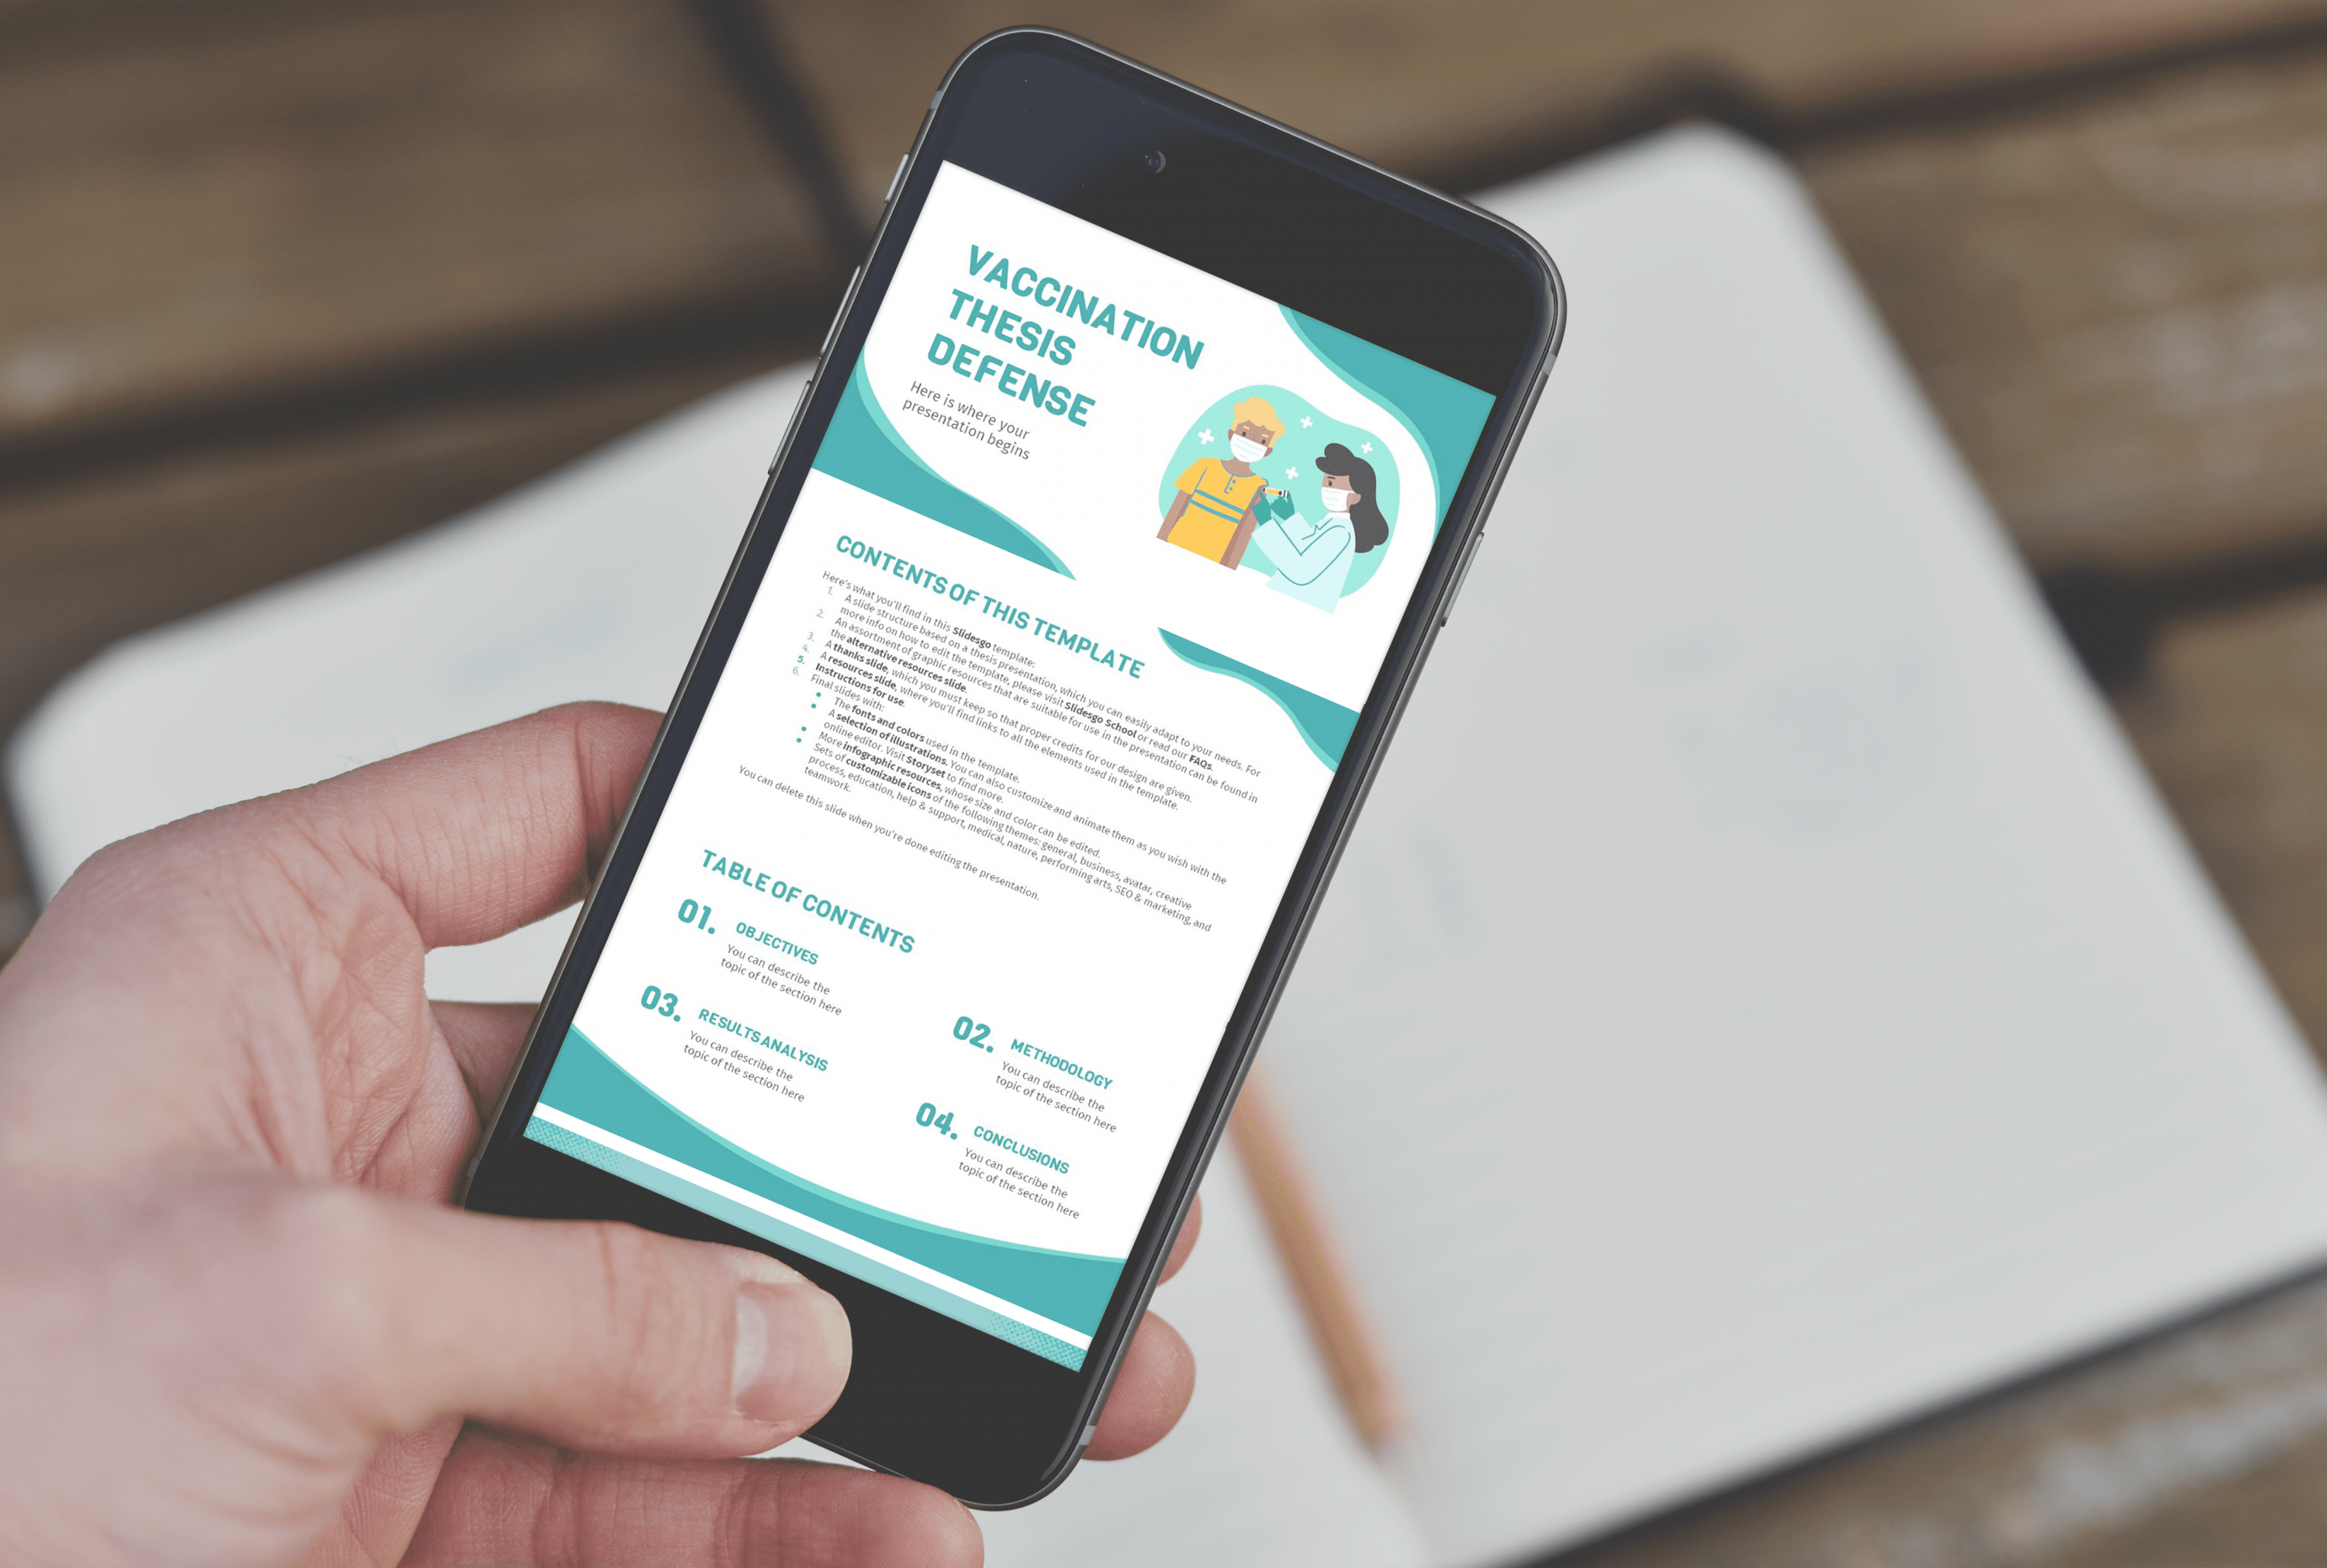 Free Vaccination Thesis Defense Powerpoint Template by MasterBundles mobile.